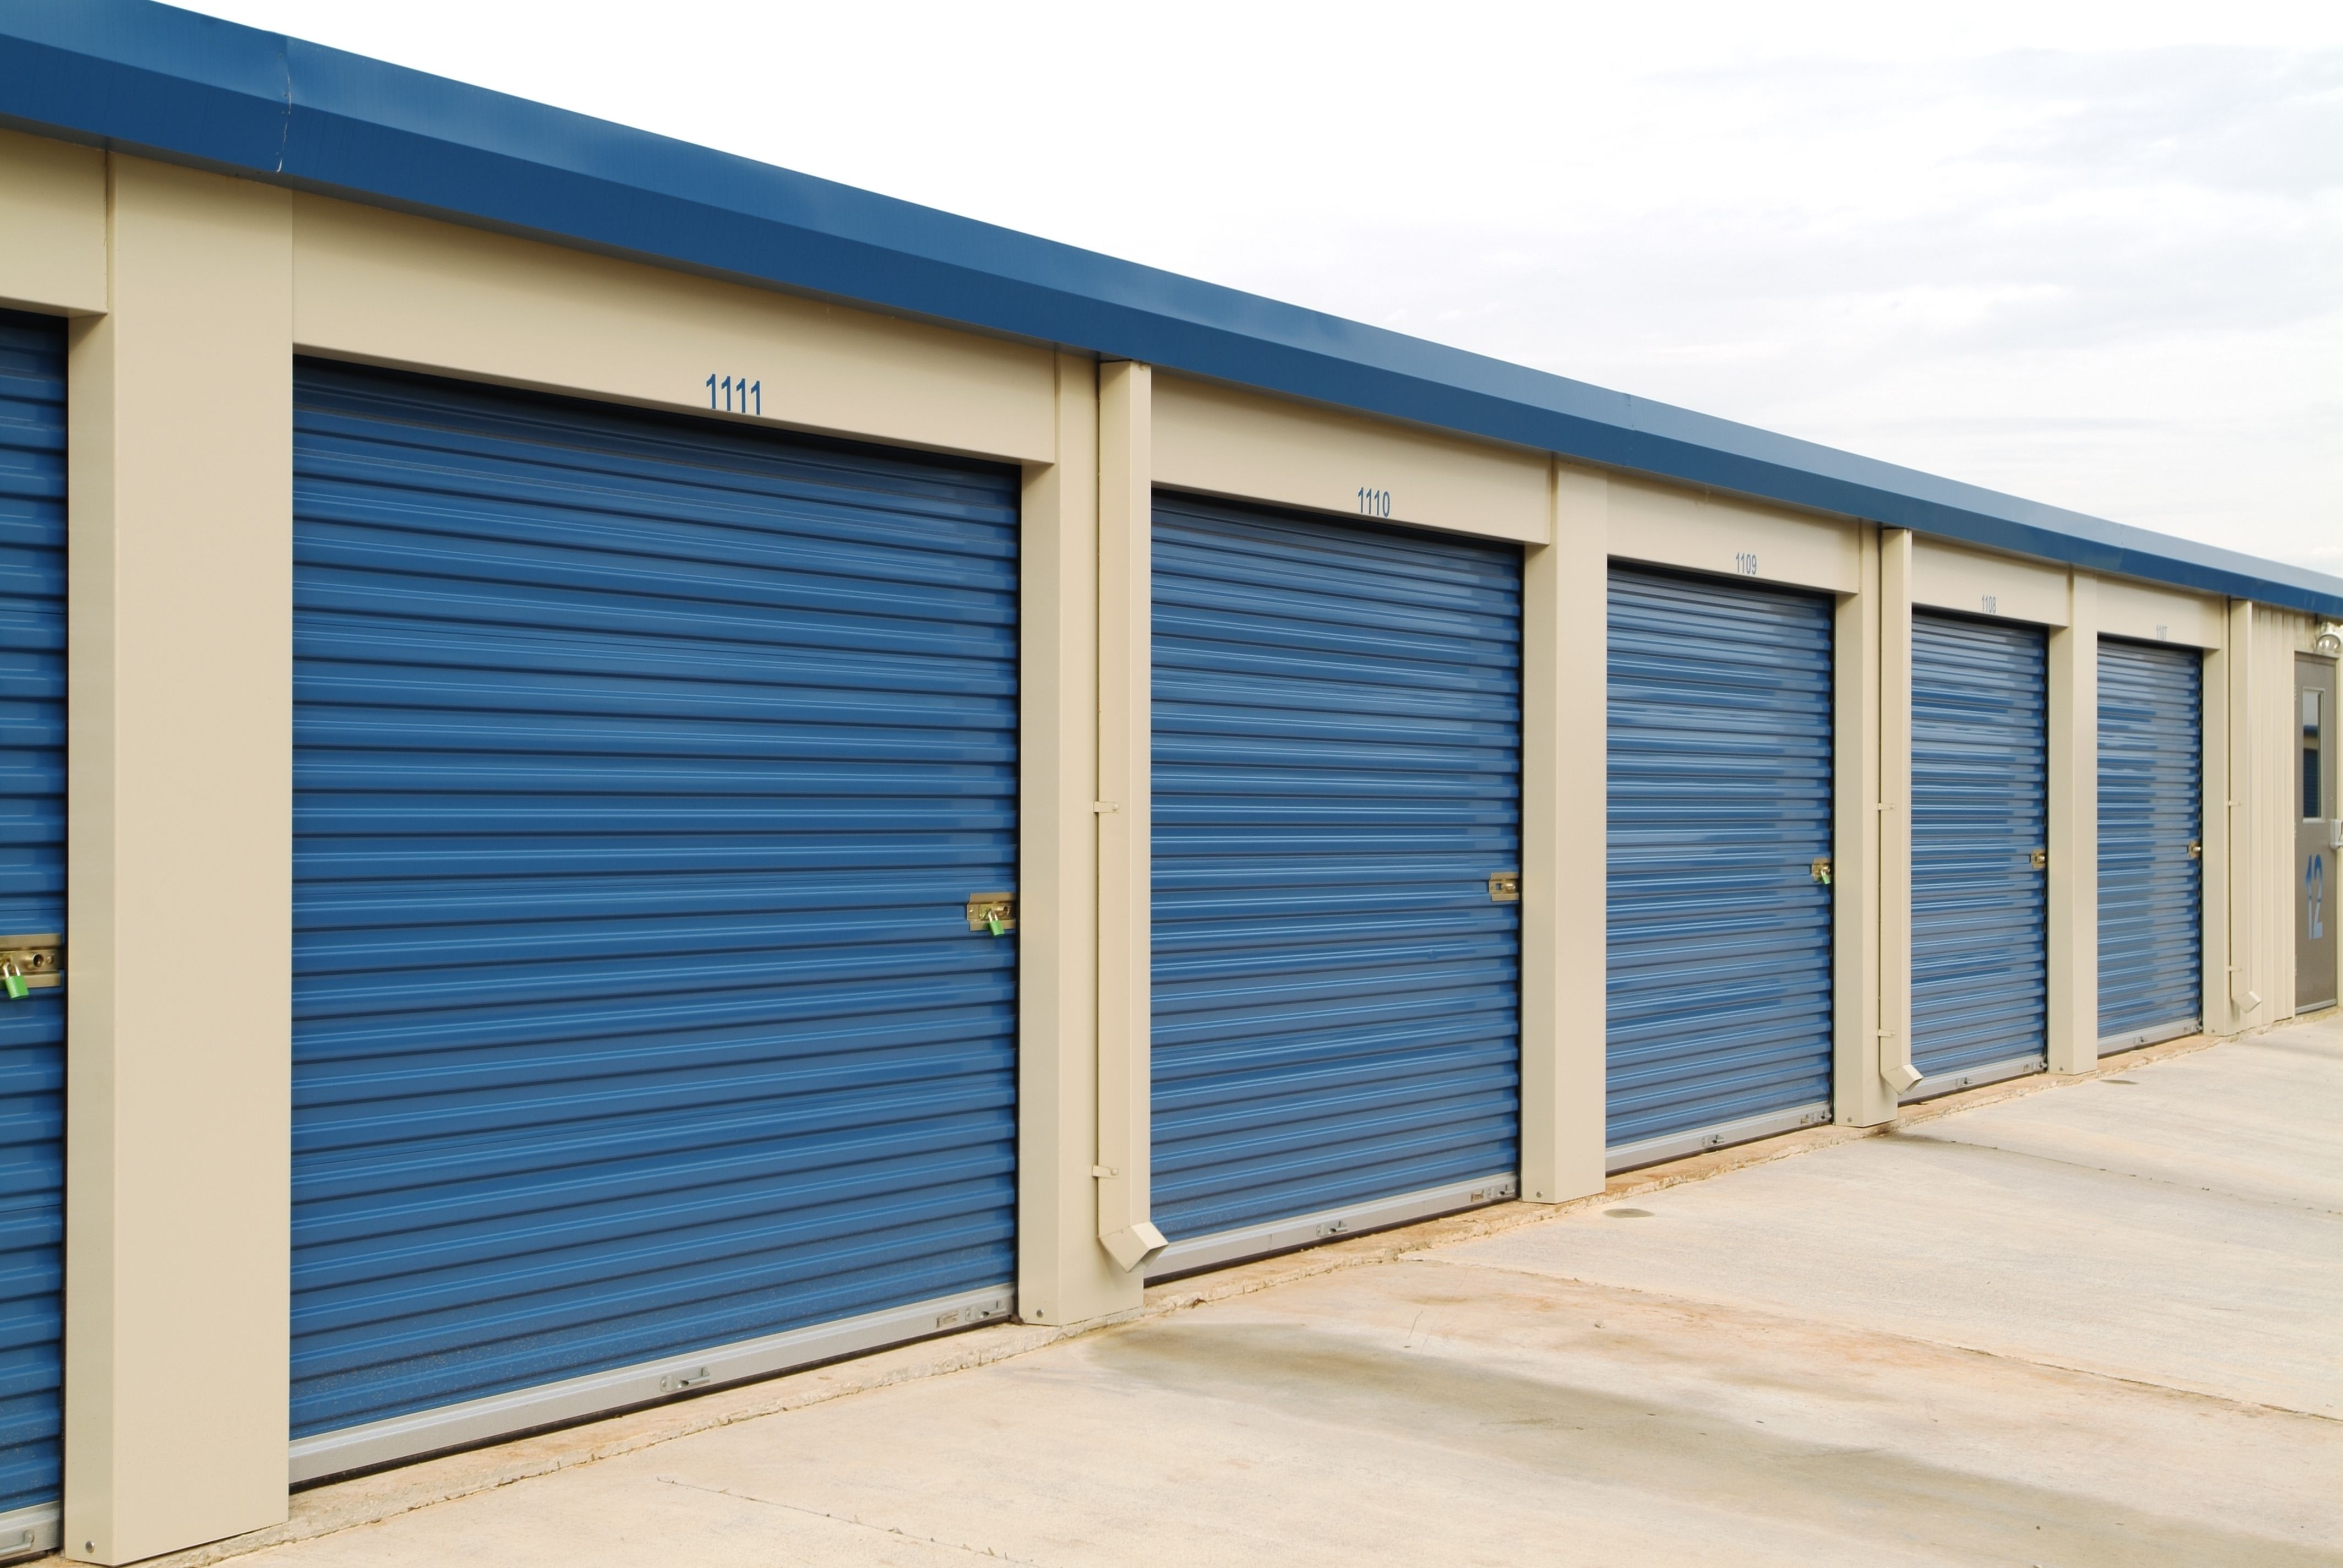 Commercial Roll Up Doors Are Designed To Give Your Building The